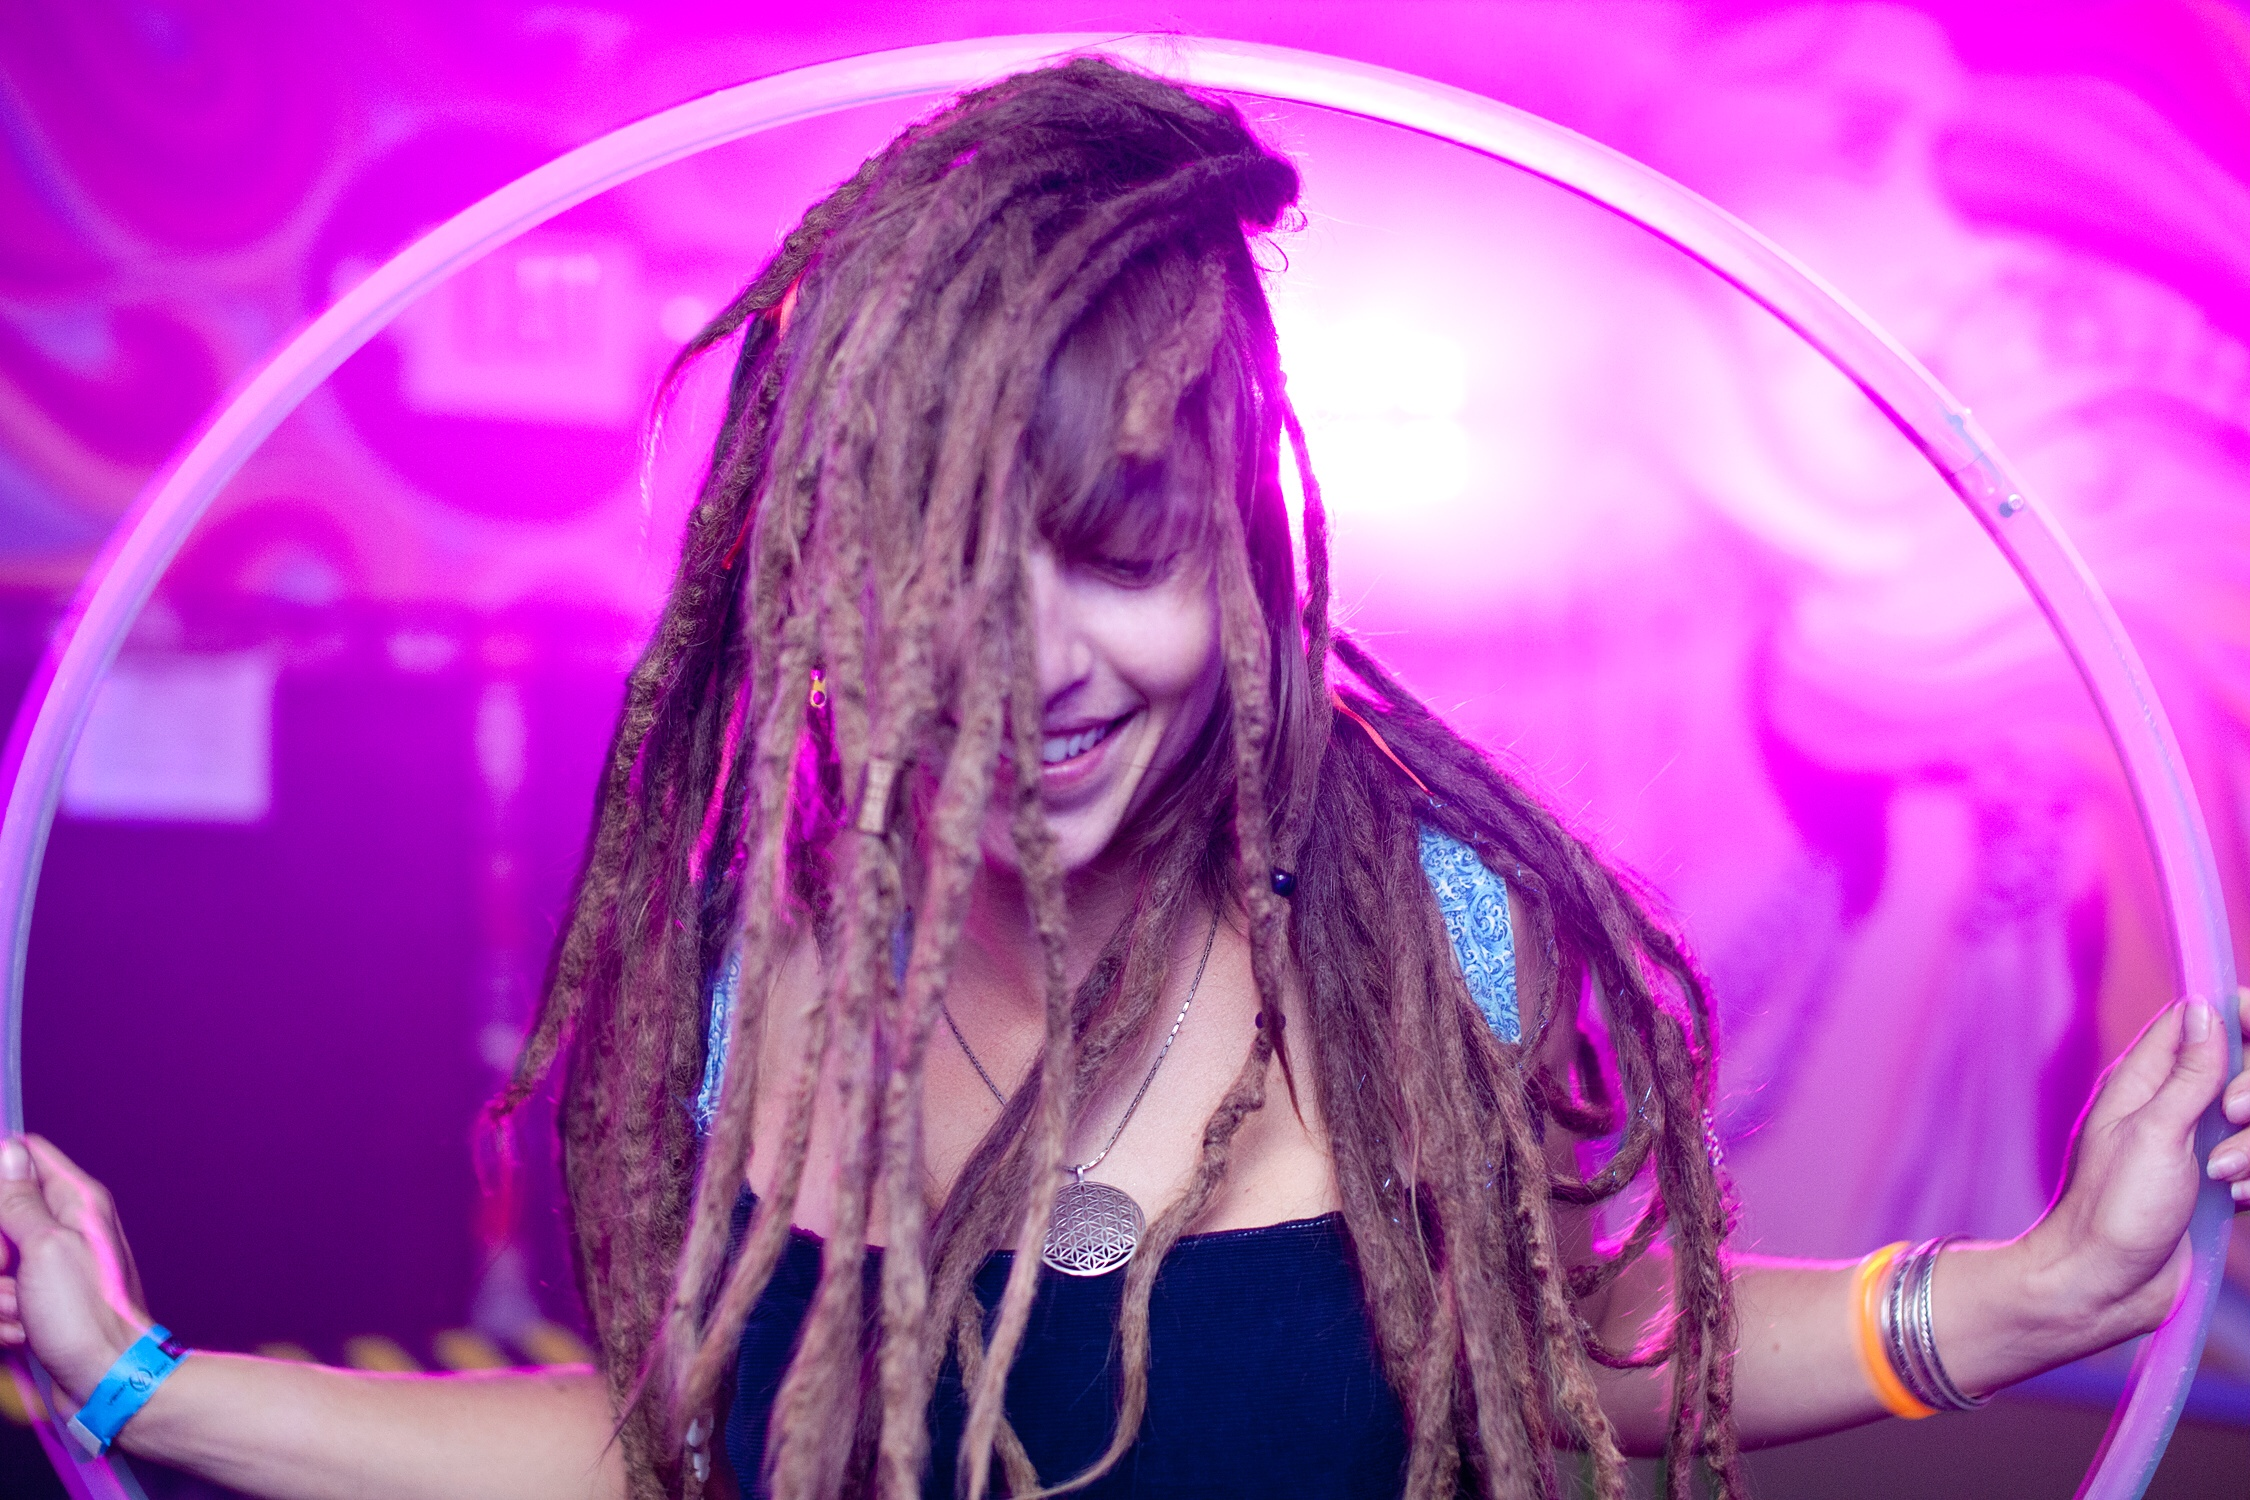 Wanna see me twirling, dancing, and bouncing through my hoop? Click  here